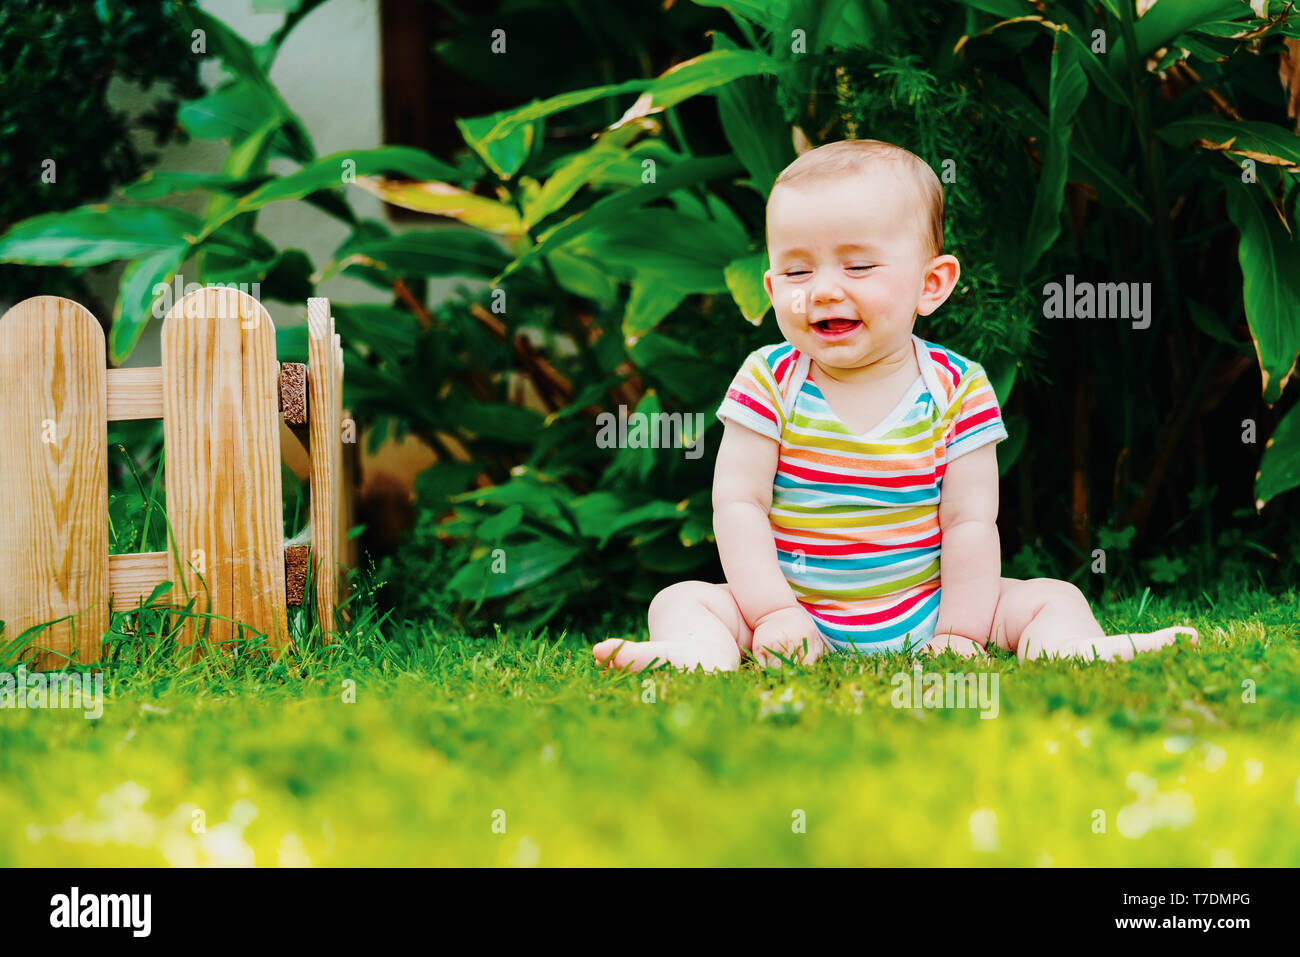 Lovely baby sitting on the grass laughing loudly. - Stock Image